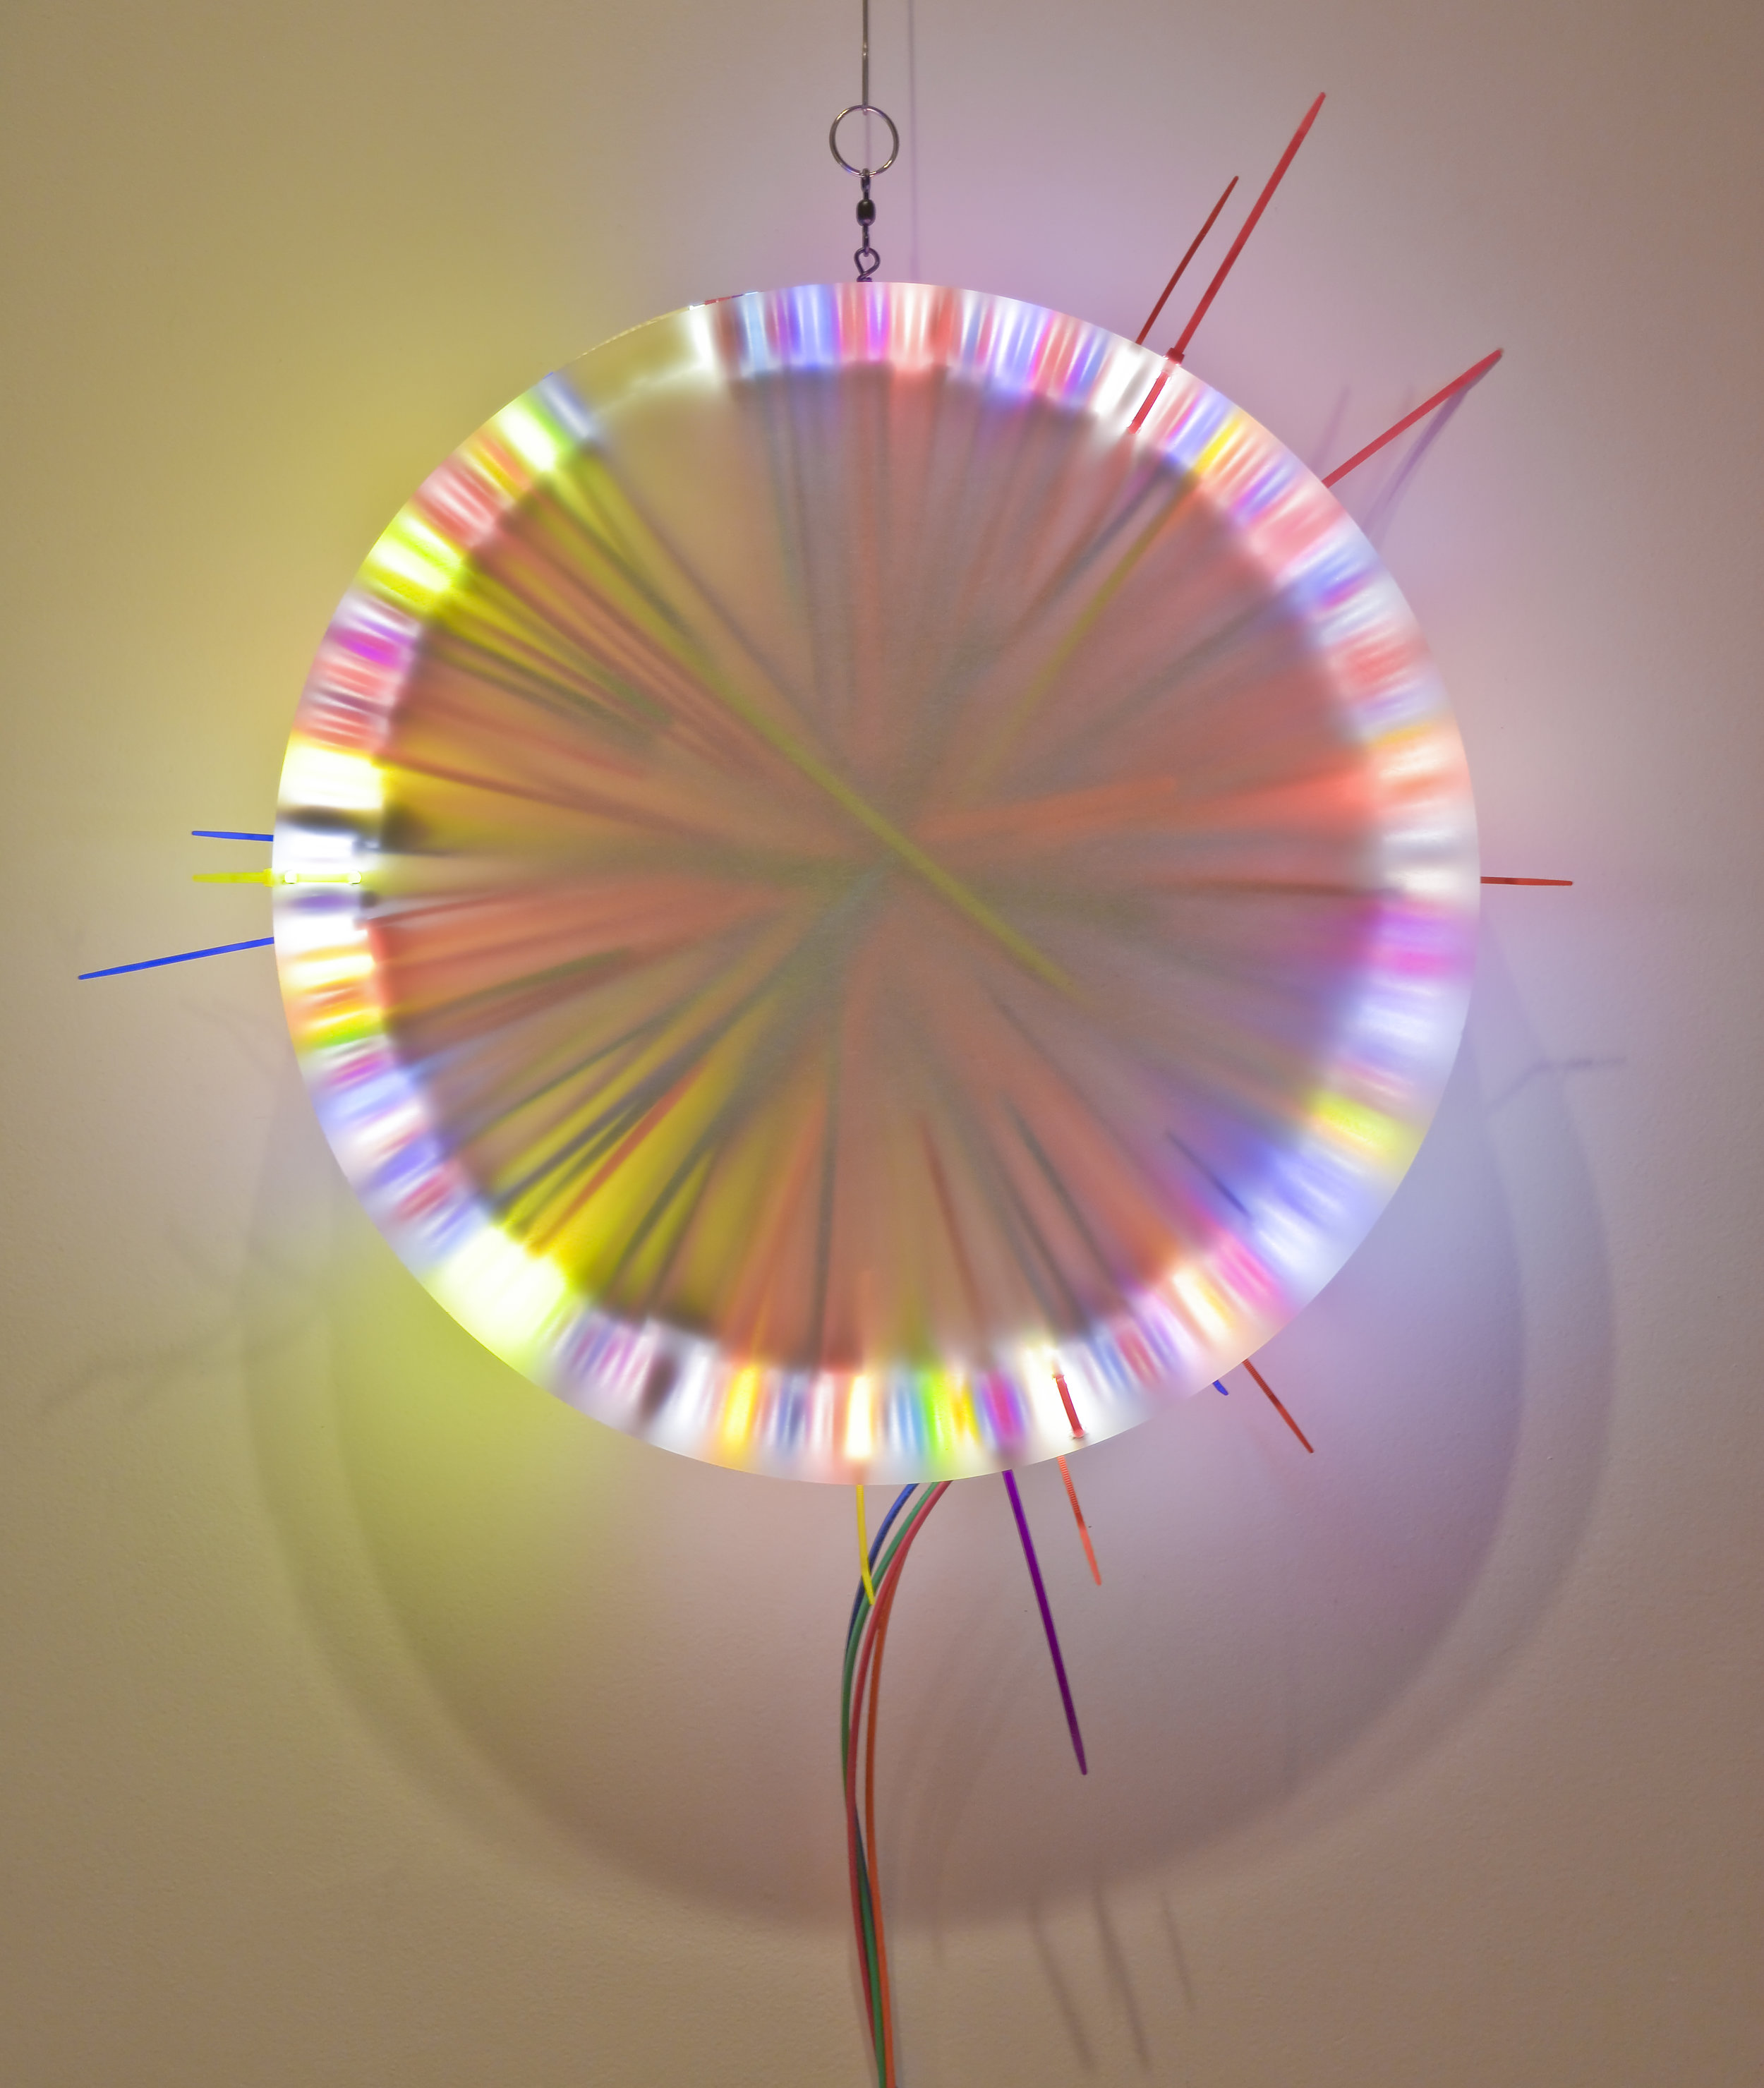 Mixed Pair (Breakup) B   Fluorescent Lamp, color snap ties, loom heddles and fishing spinners and color wire 16 in lamp diameter 24 in overall